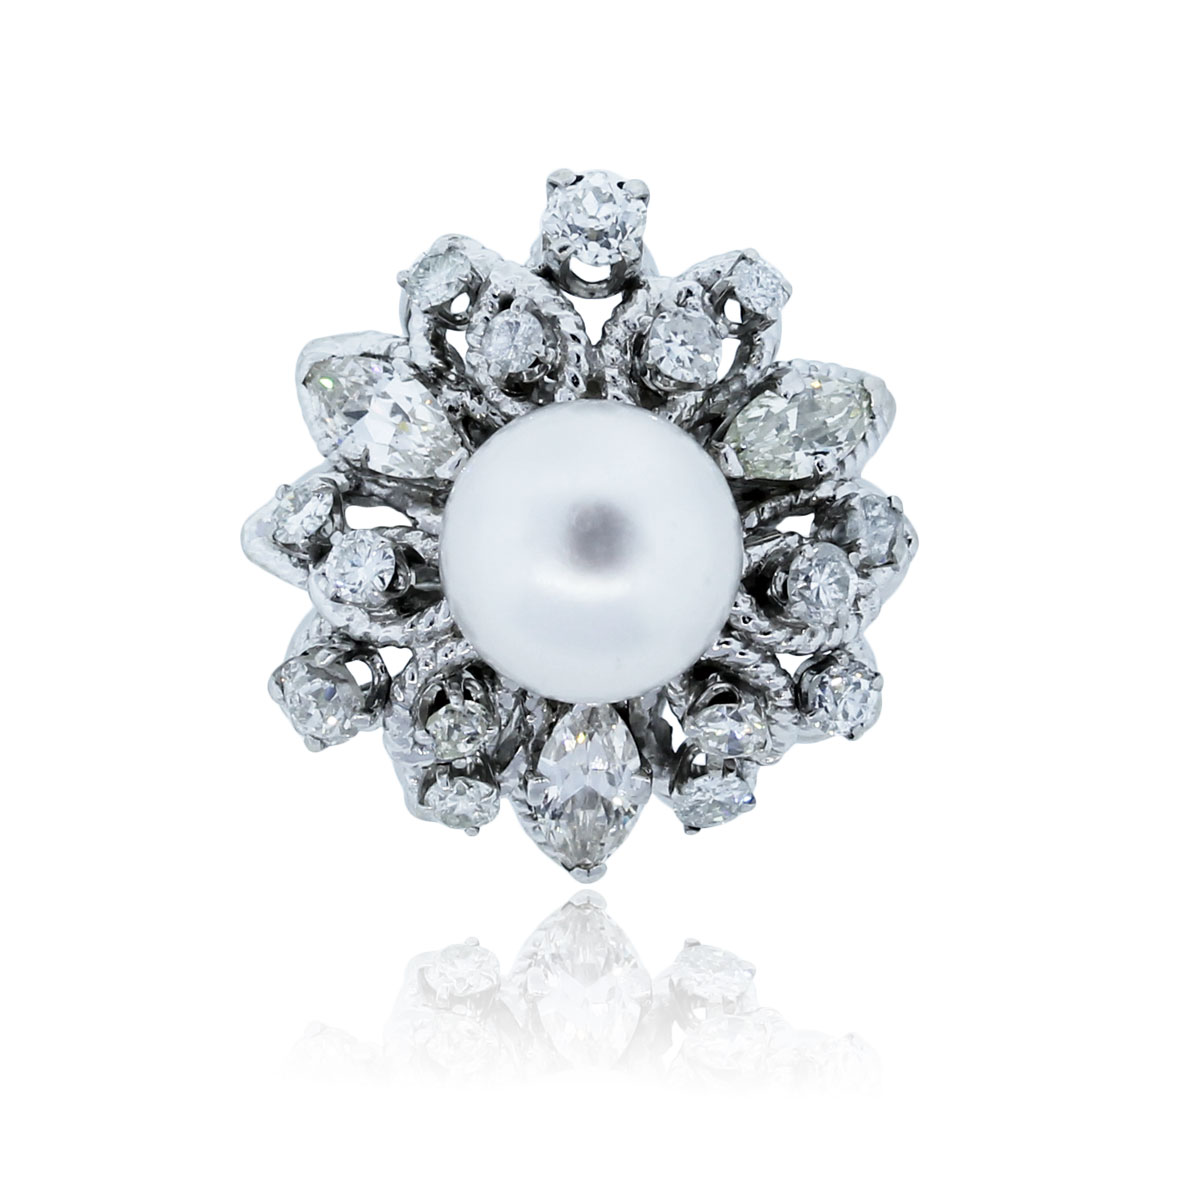 You are viewing this 14K White Gold, Diamond and South Sea Pearl Ring!